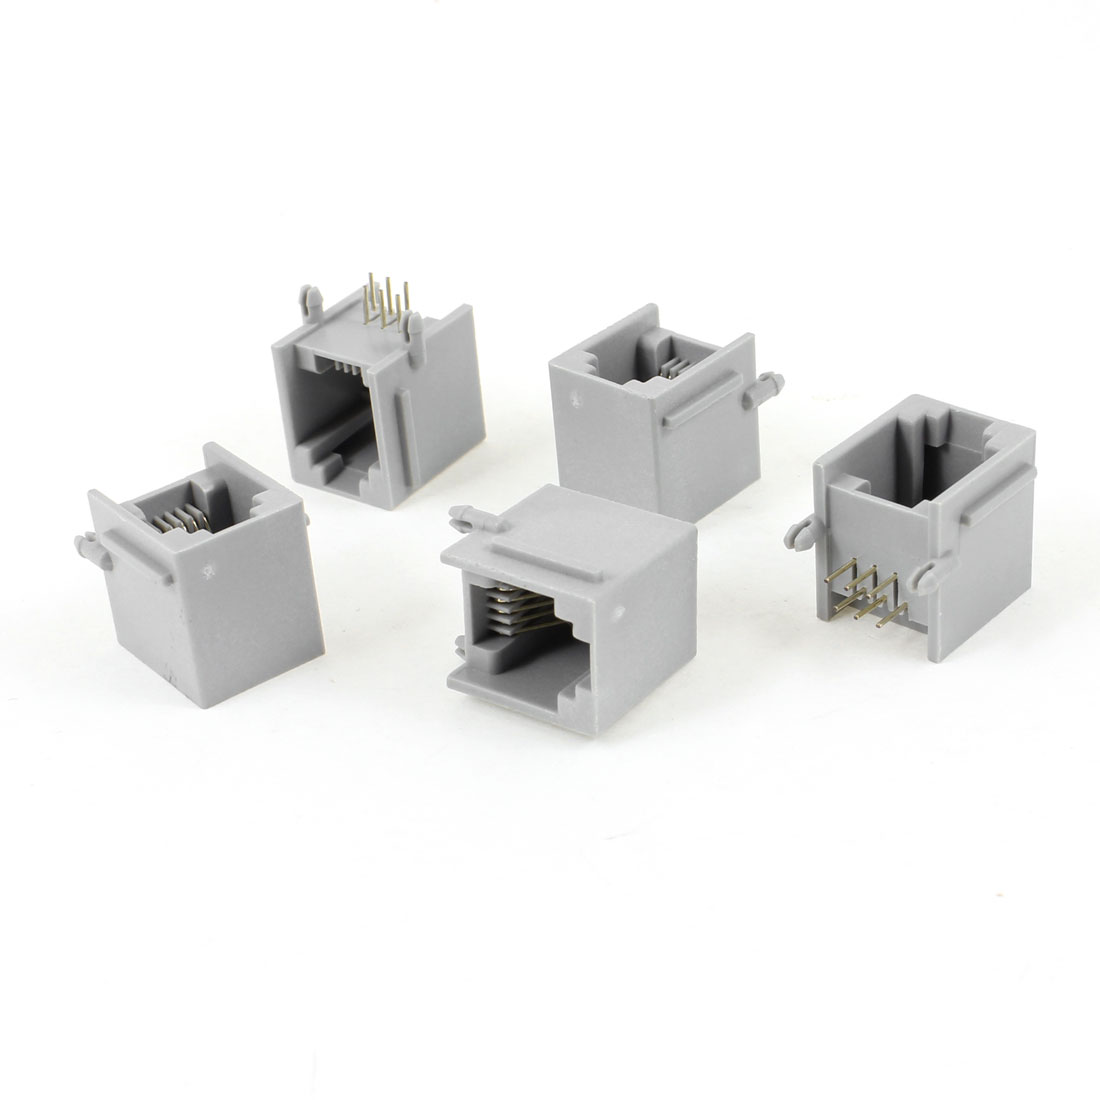 5 Pcs Gray Plastic Unshielded RJ12 6P6C Network Modular PCB Connector Jacks